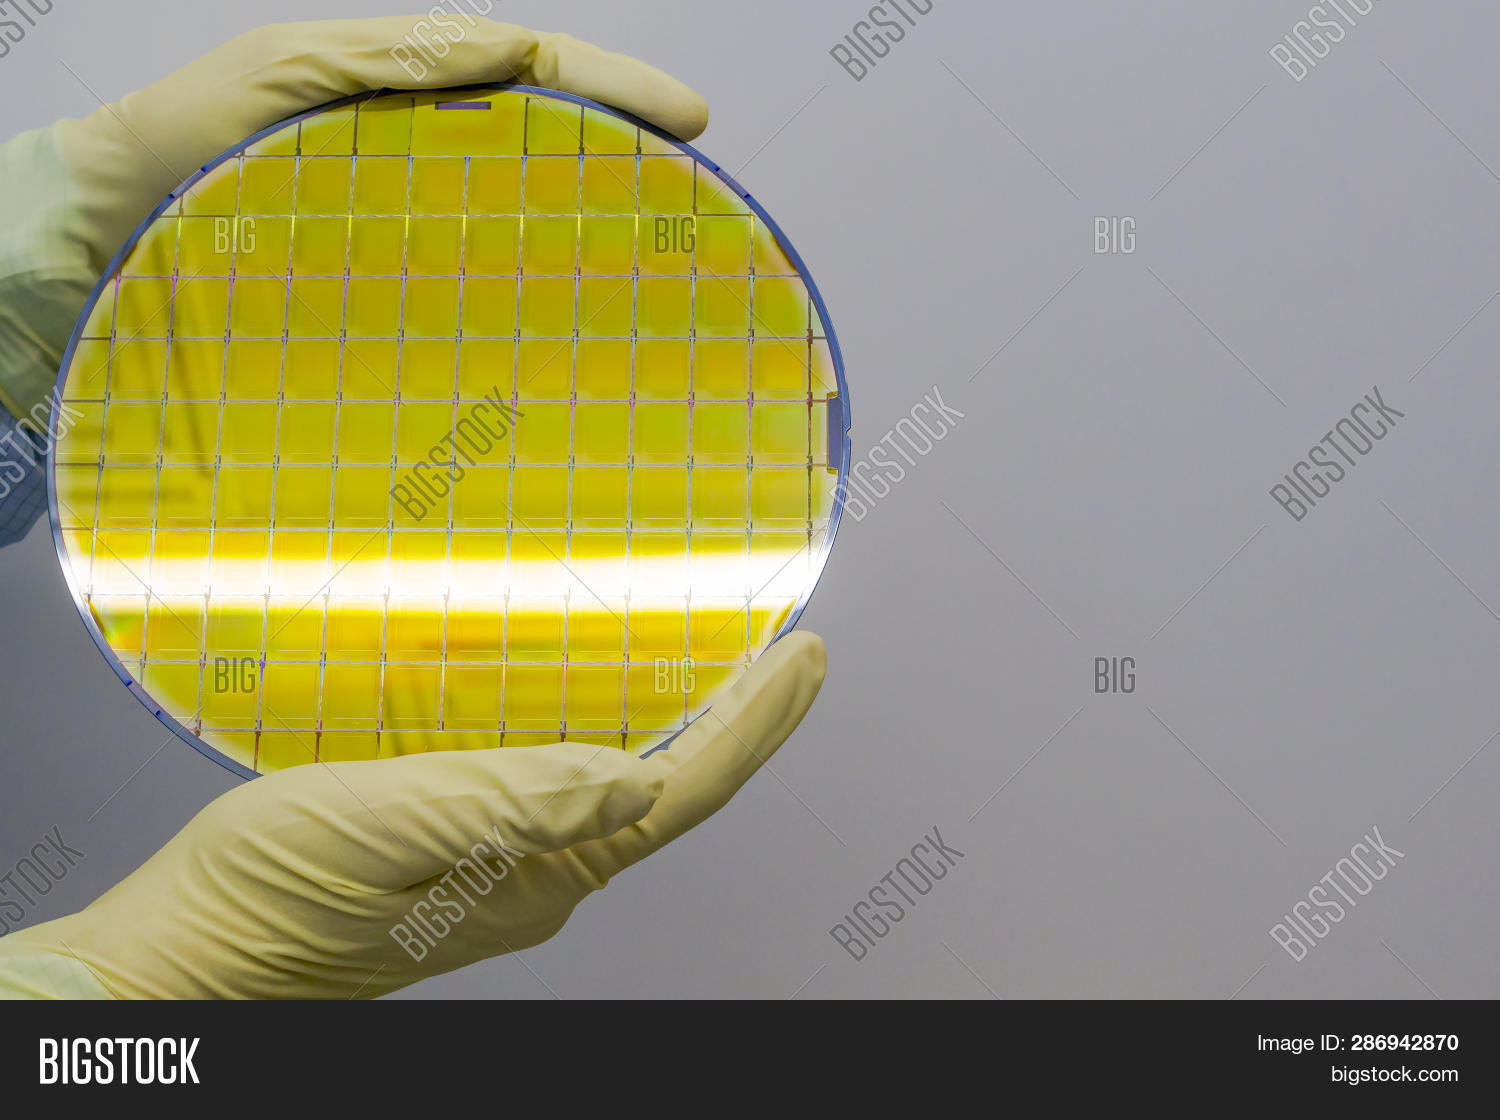 Silicon Wafer Held Image & Photo (Free Trial) | Bigstock